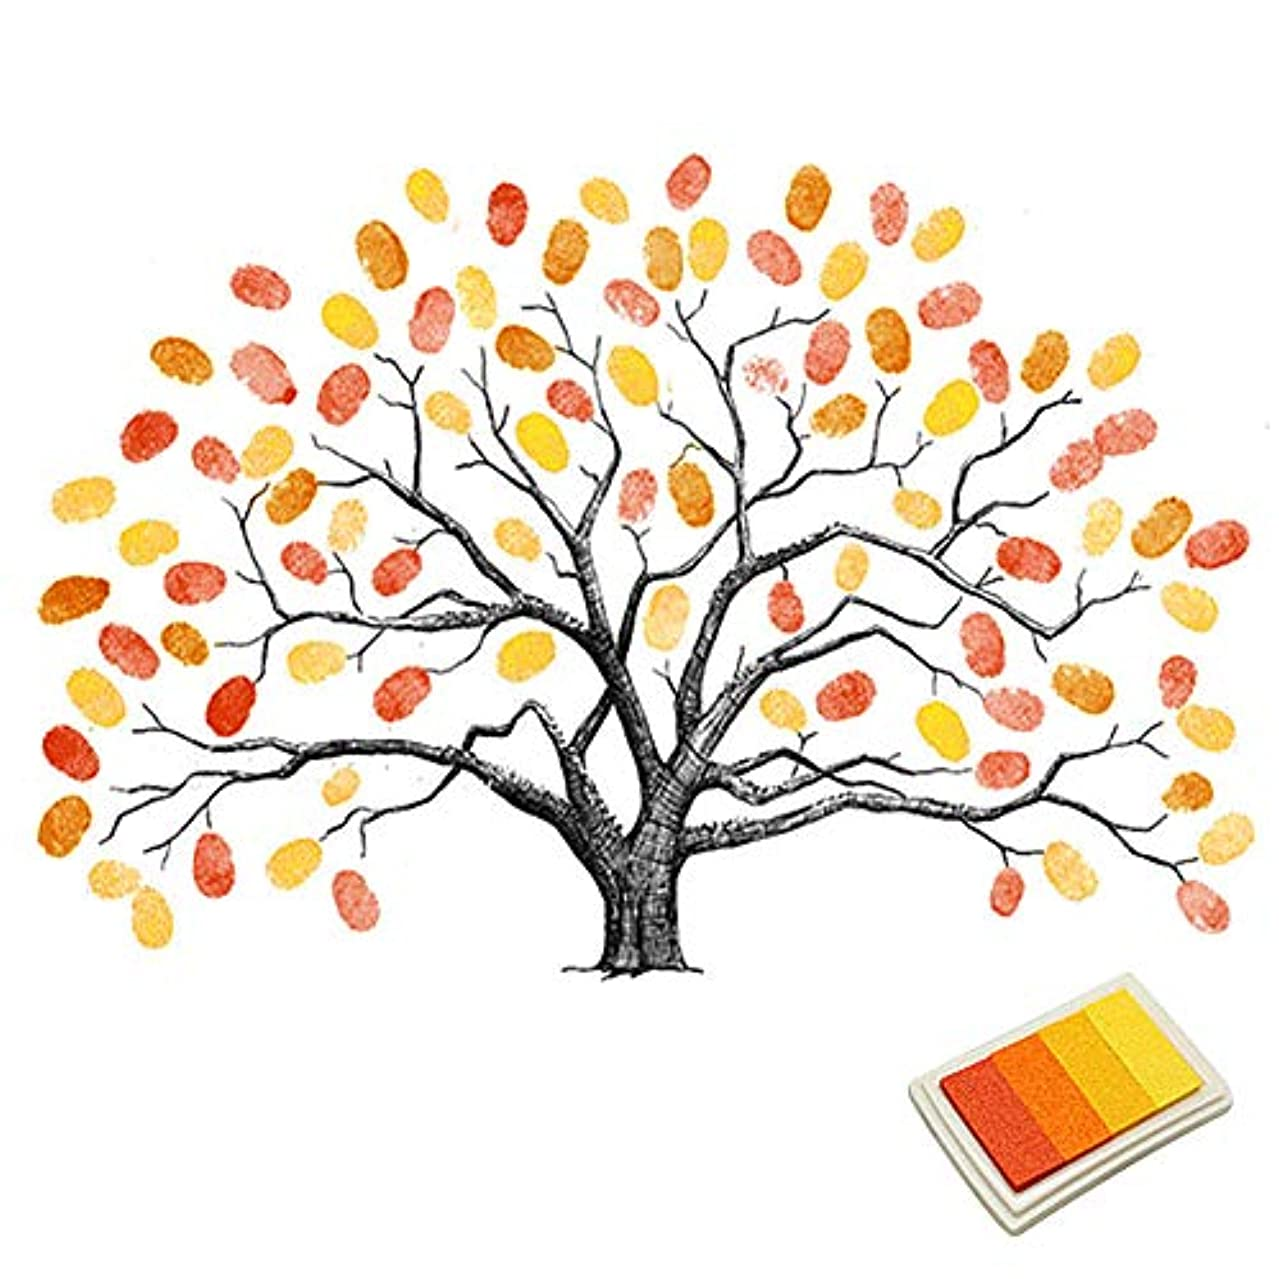 Fingerprints Tree, Proboths Creative Wedding Guest Signature Sign-in Book Canvas Ballons Tree Fingerprints Painting Decor for Wedding Party with 4pcs Ink Pads Yellow